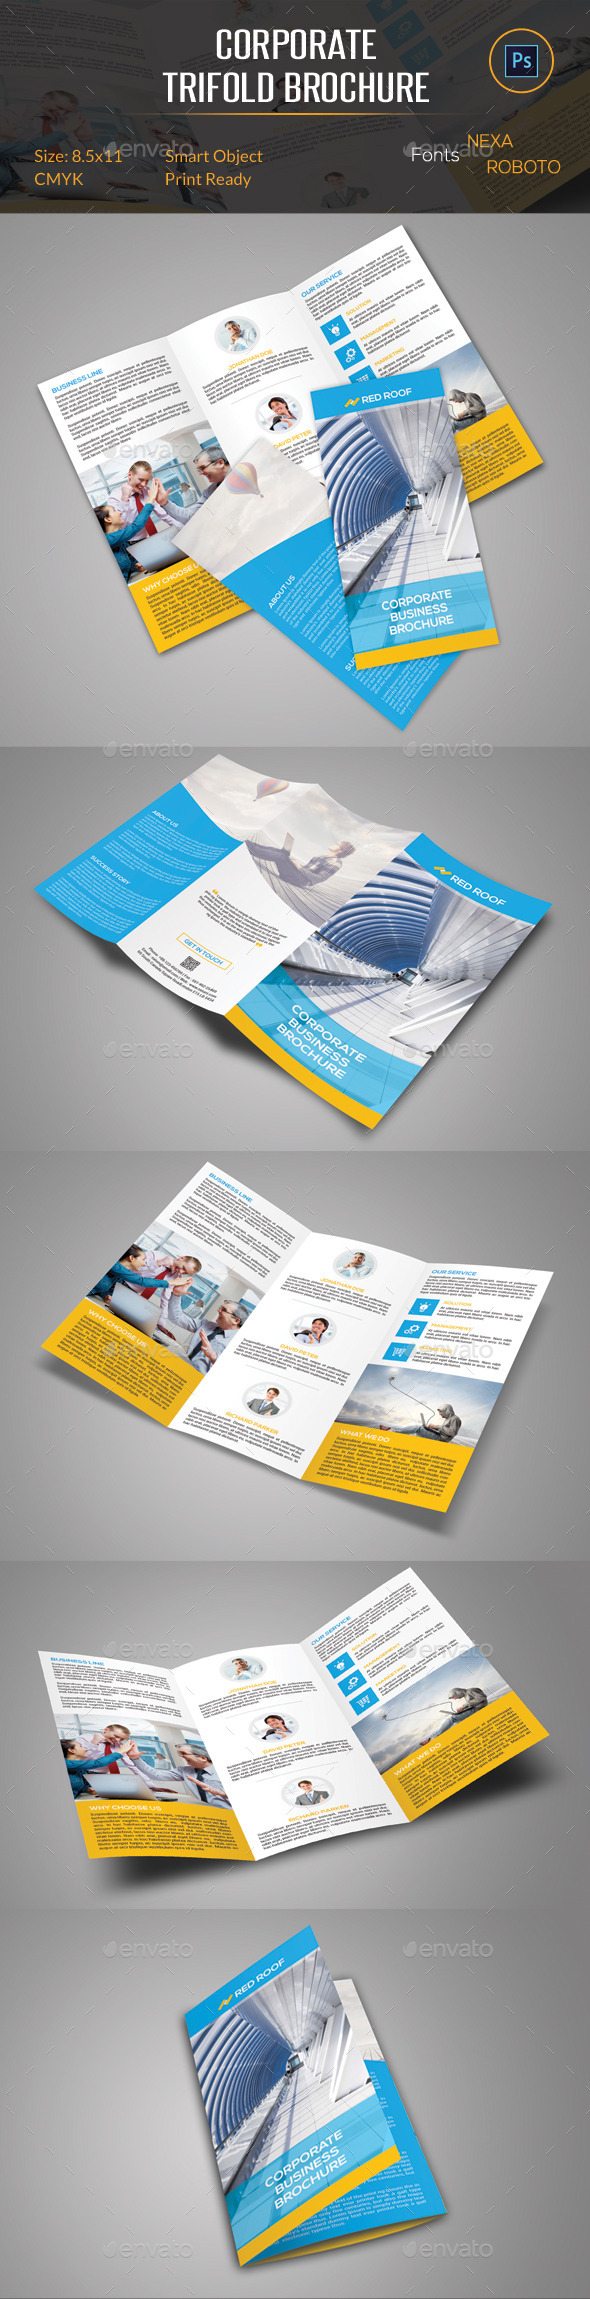 GraphicRiver Corporate Trifold Brochure 10758776